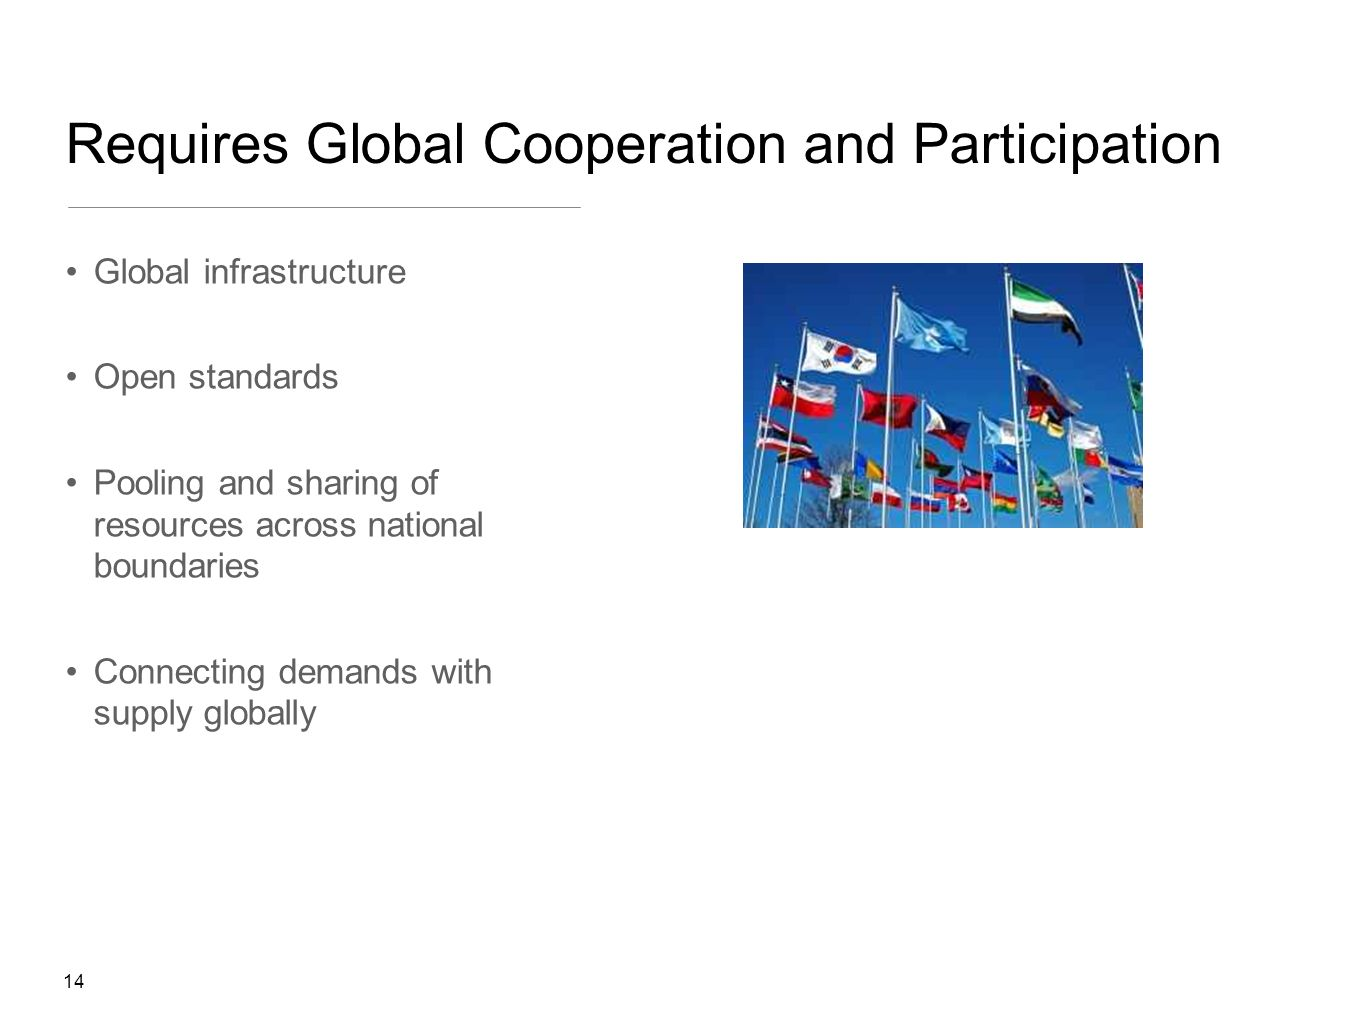 Requires Global Cooperation and Participation Global infrastructure Open standards Pooling and sharing of resources across national boundaries Connect